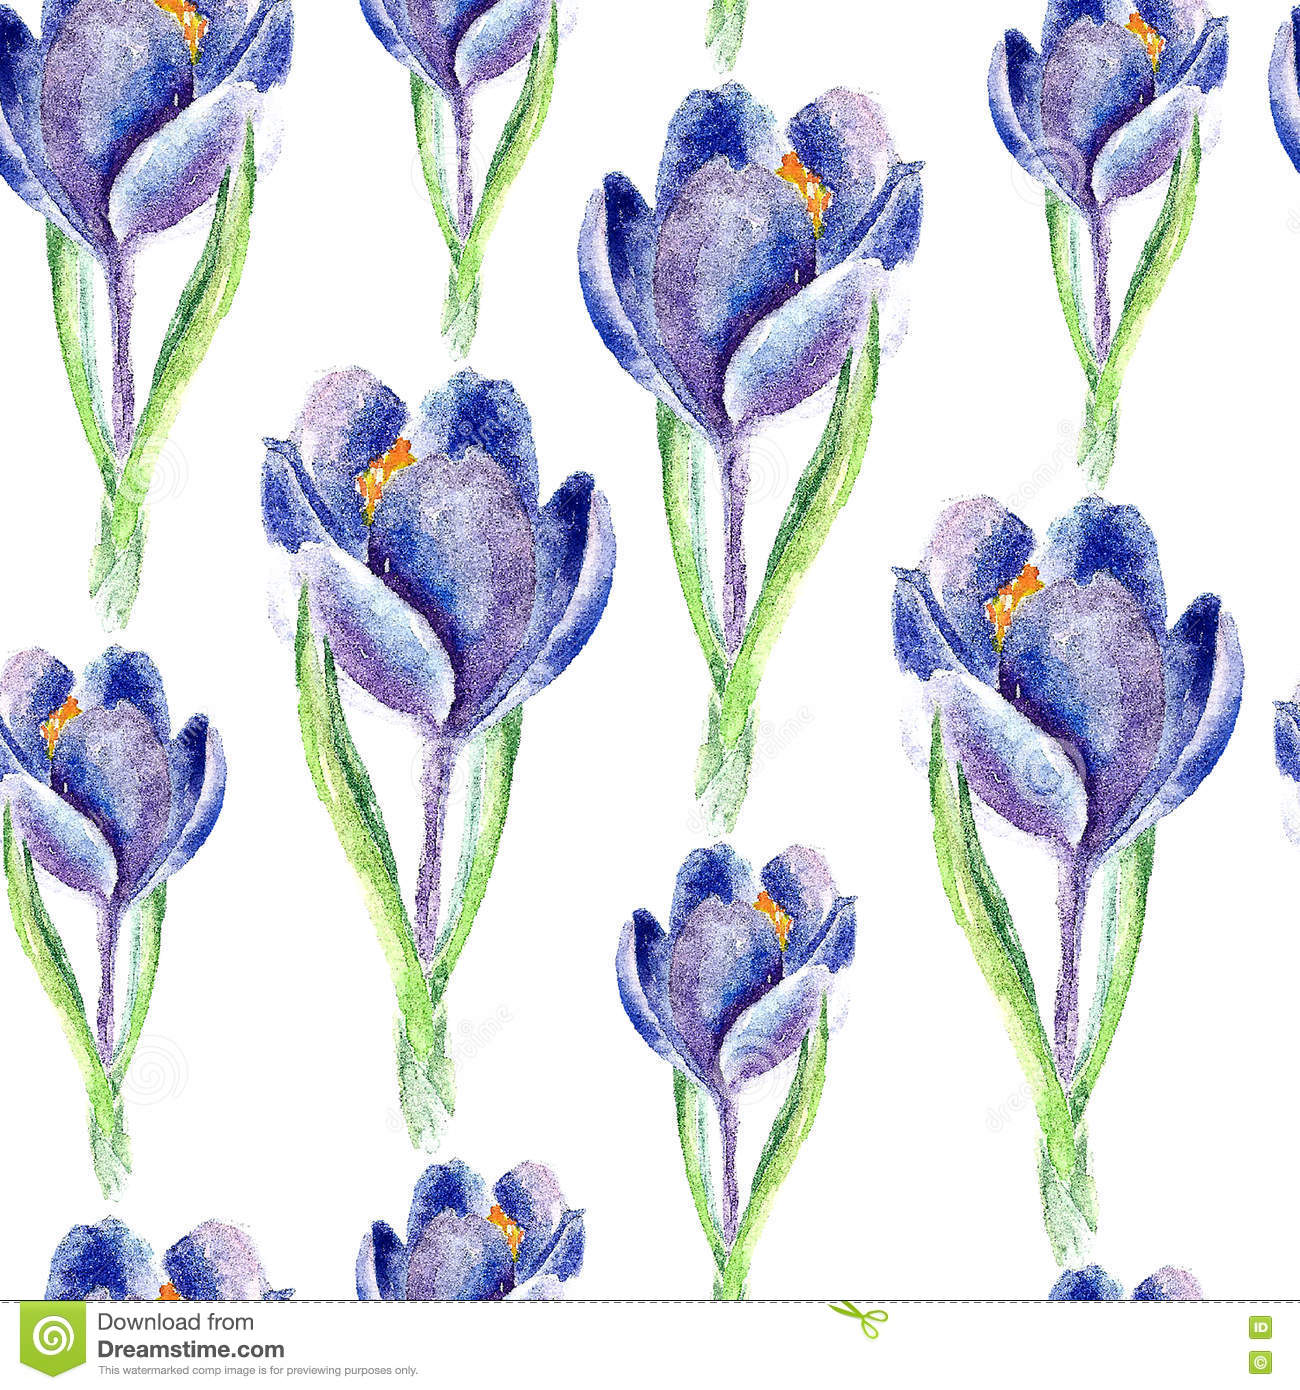 Watercolor saffron herb. seamless pattern